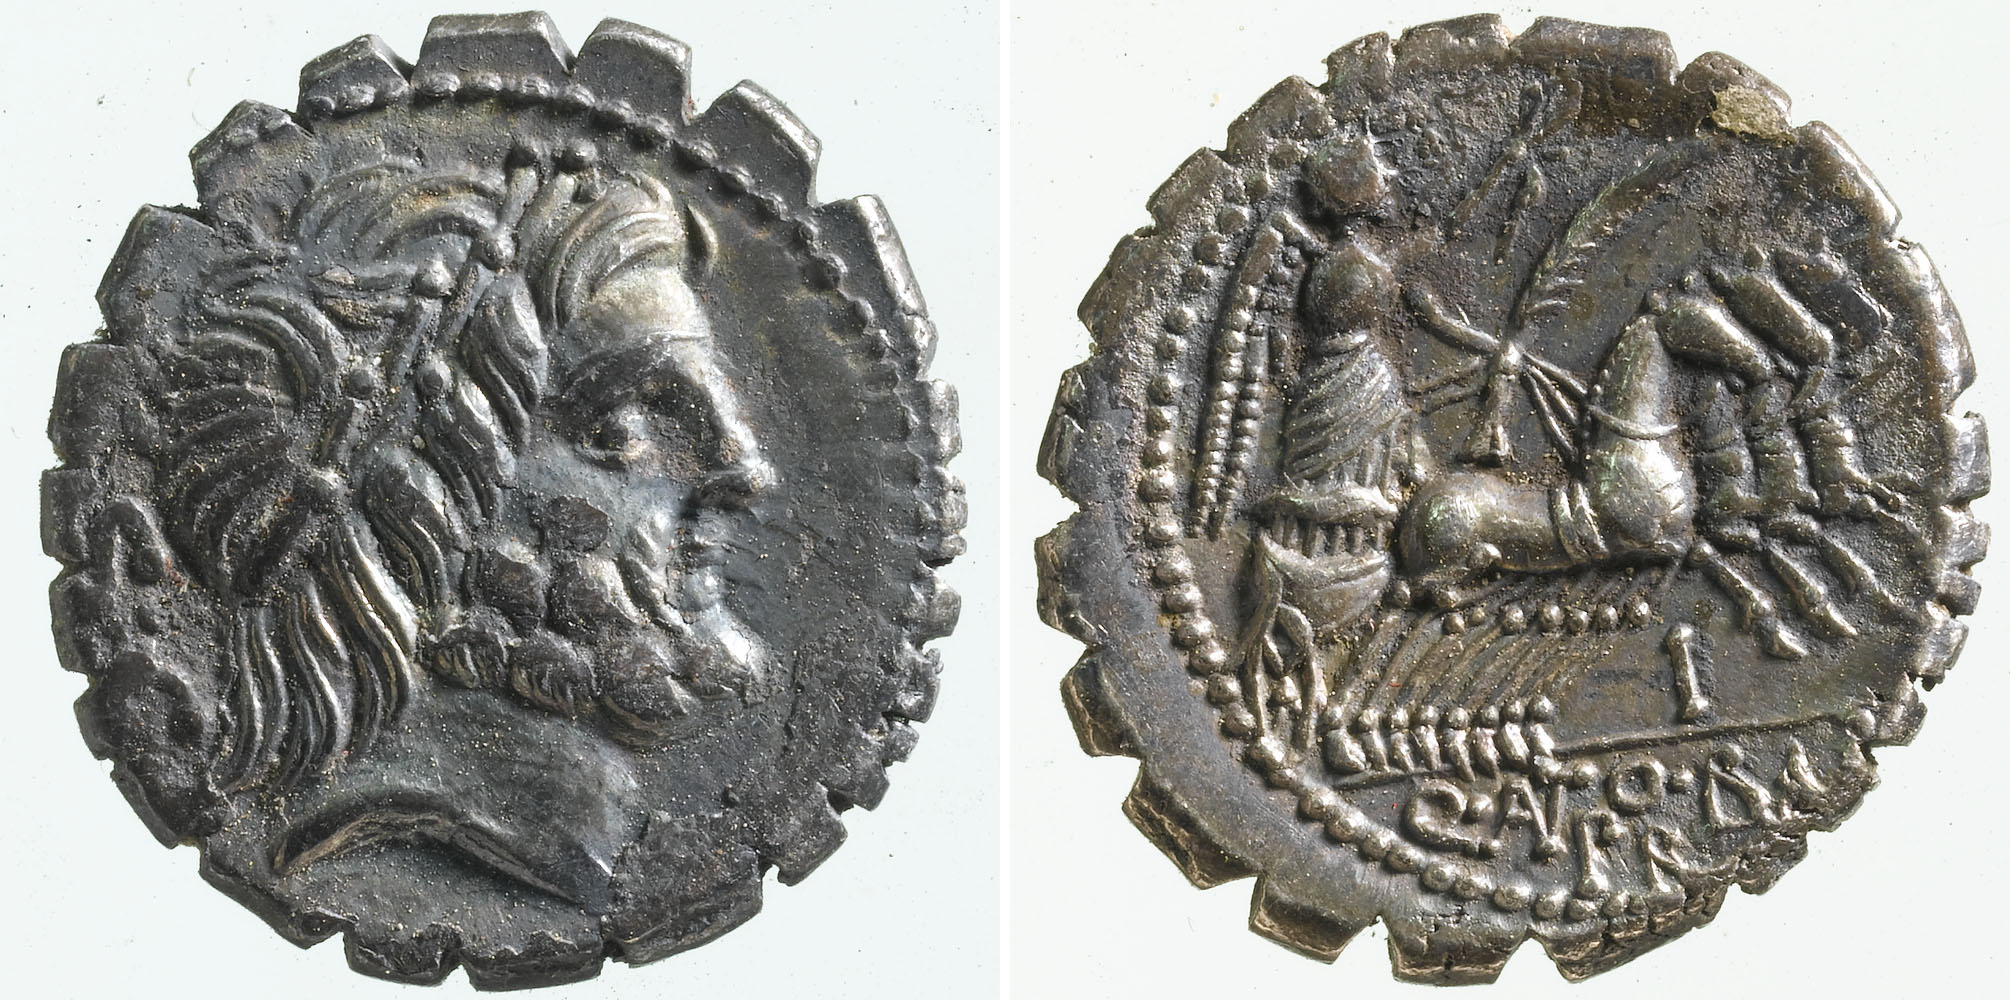 a photo of both sides of a Roman coin with the head of an emperor